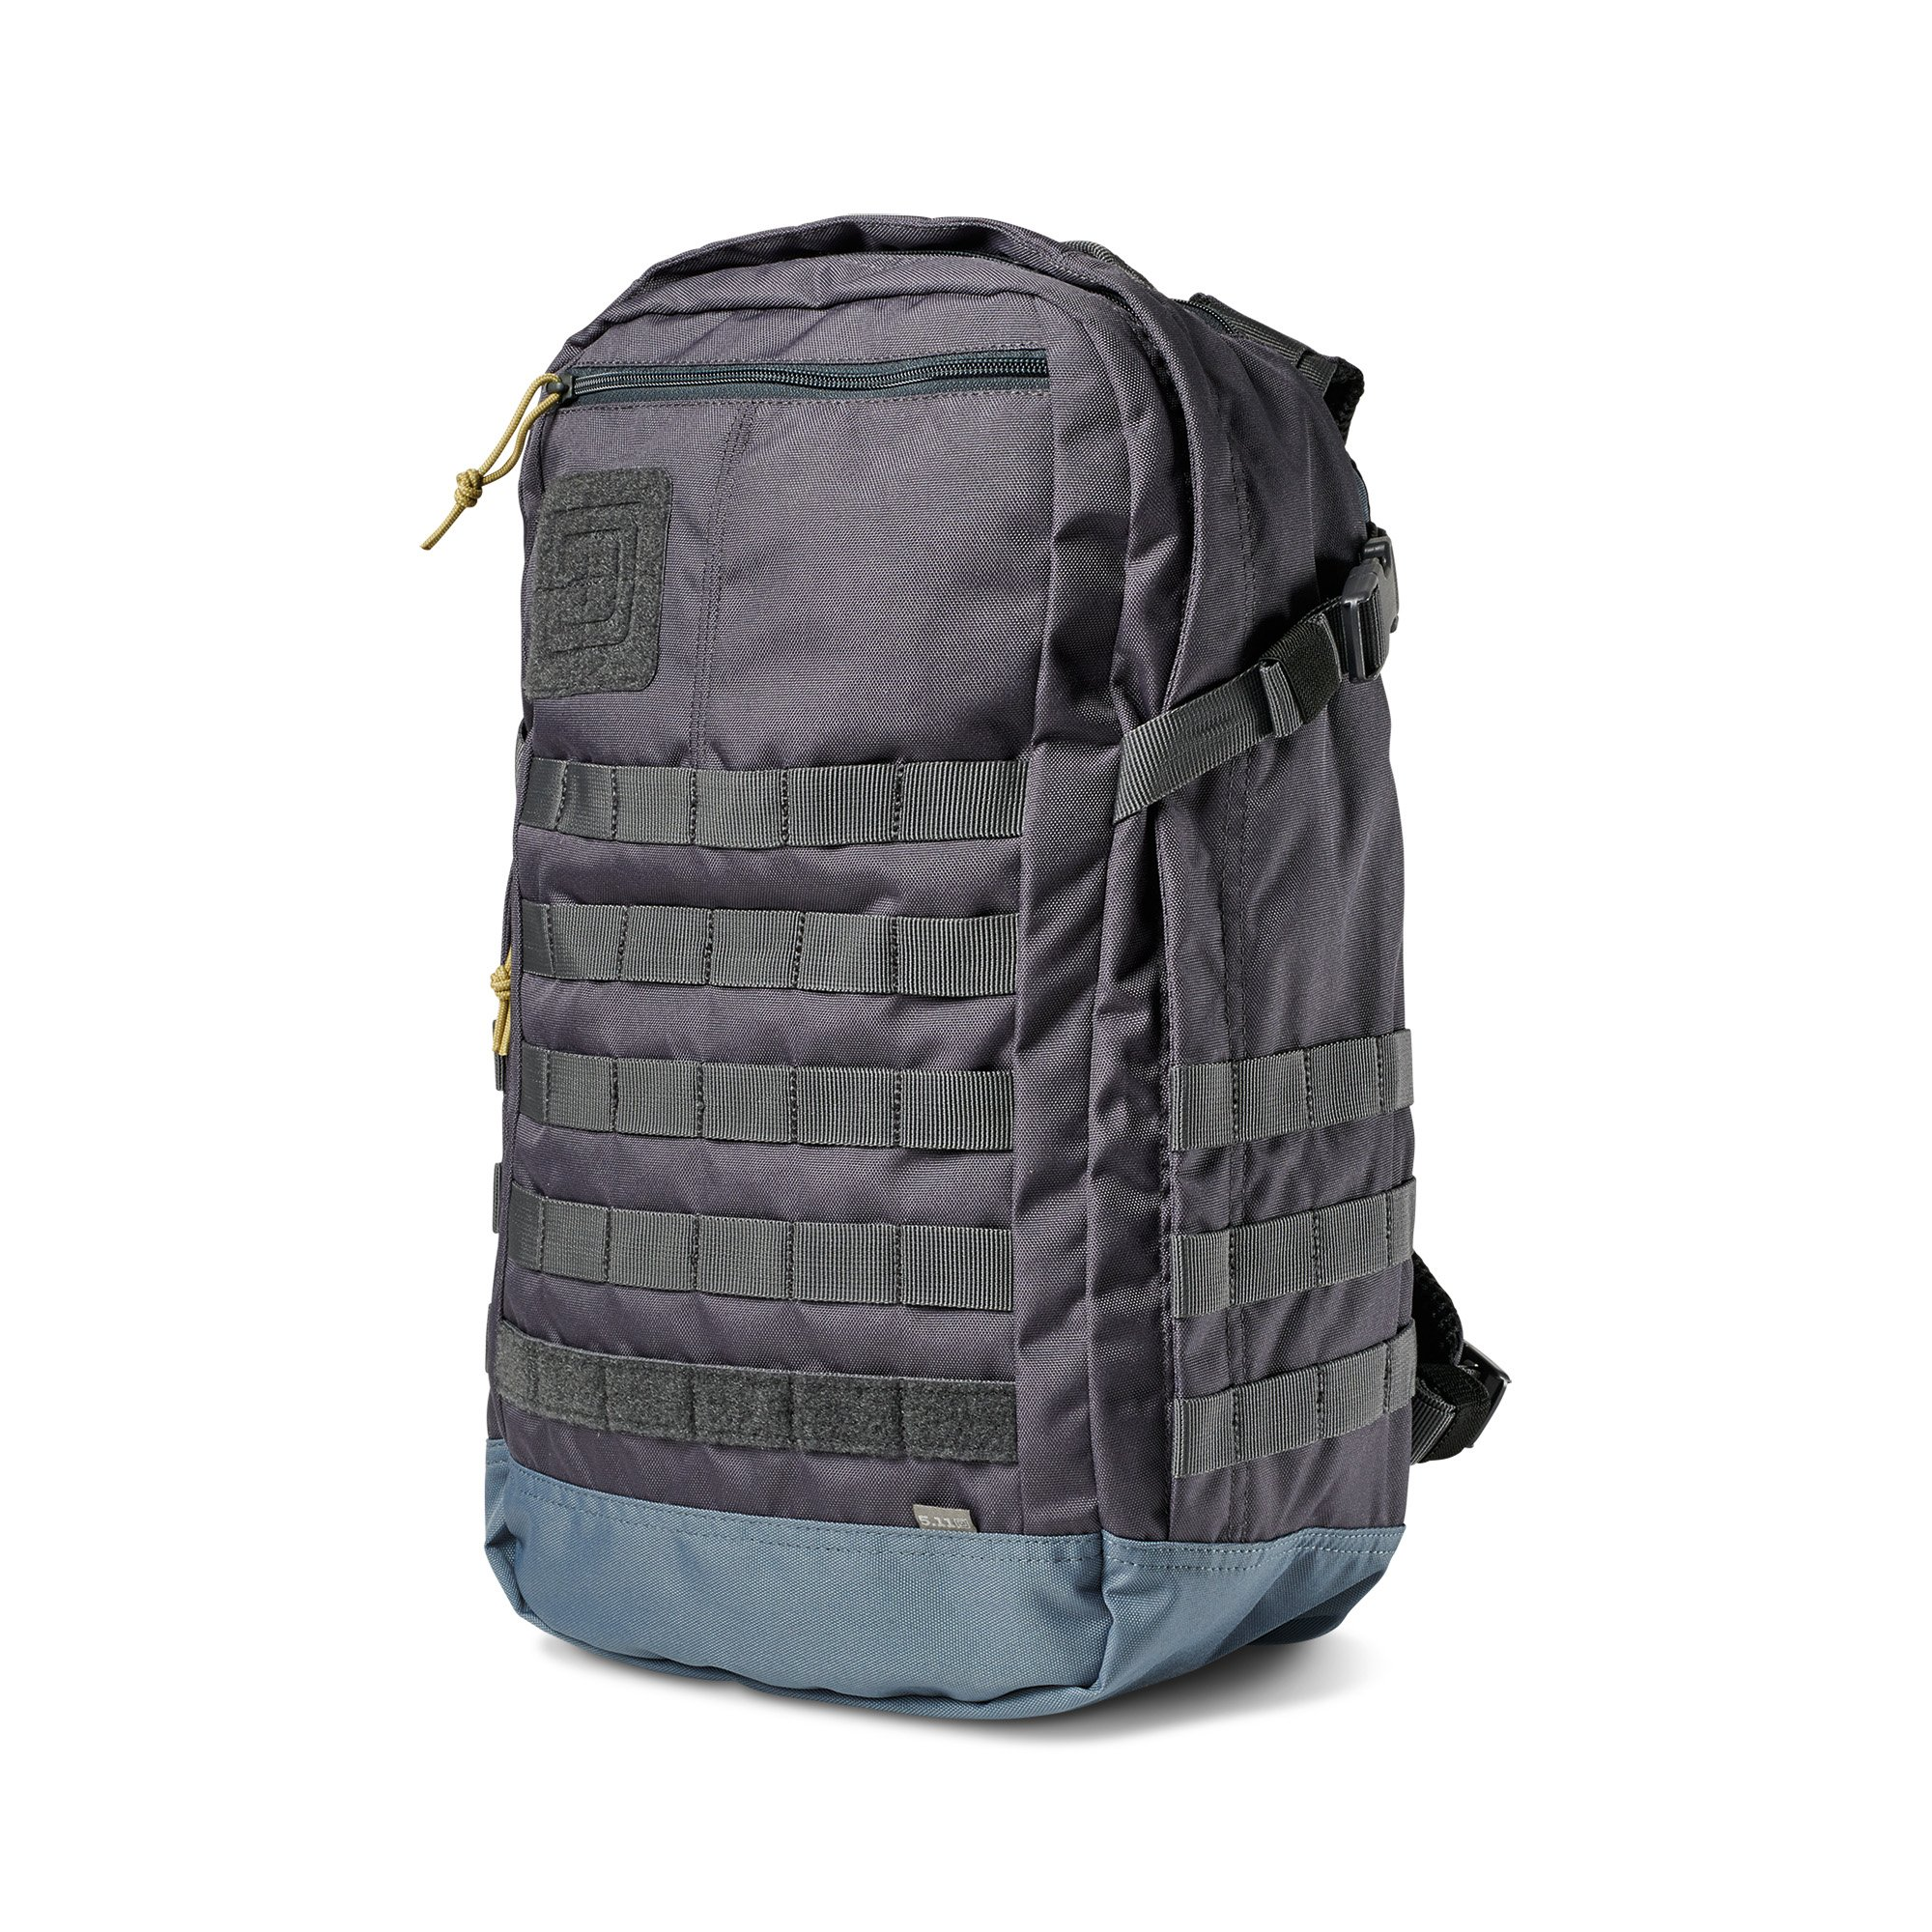 5.11 Rapid Origin Tactical Backpack with Laptop Sleeve, Hydration Pocket, MOLLE, Style 56355, Coal by 5.11